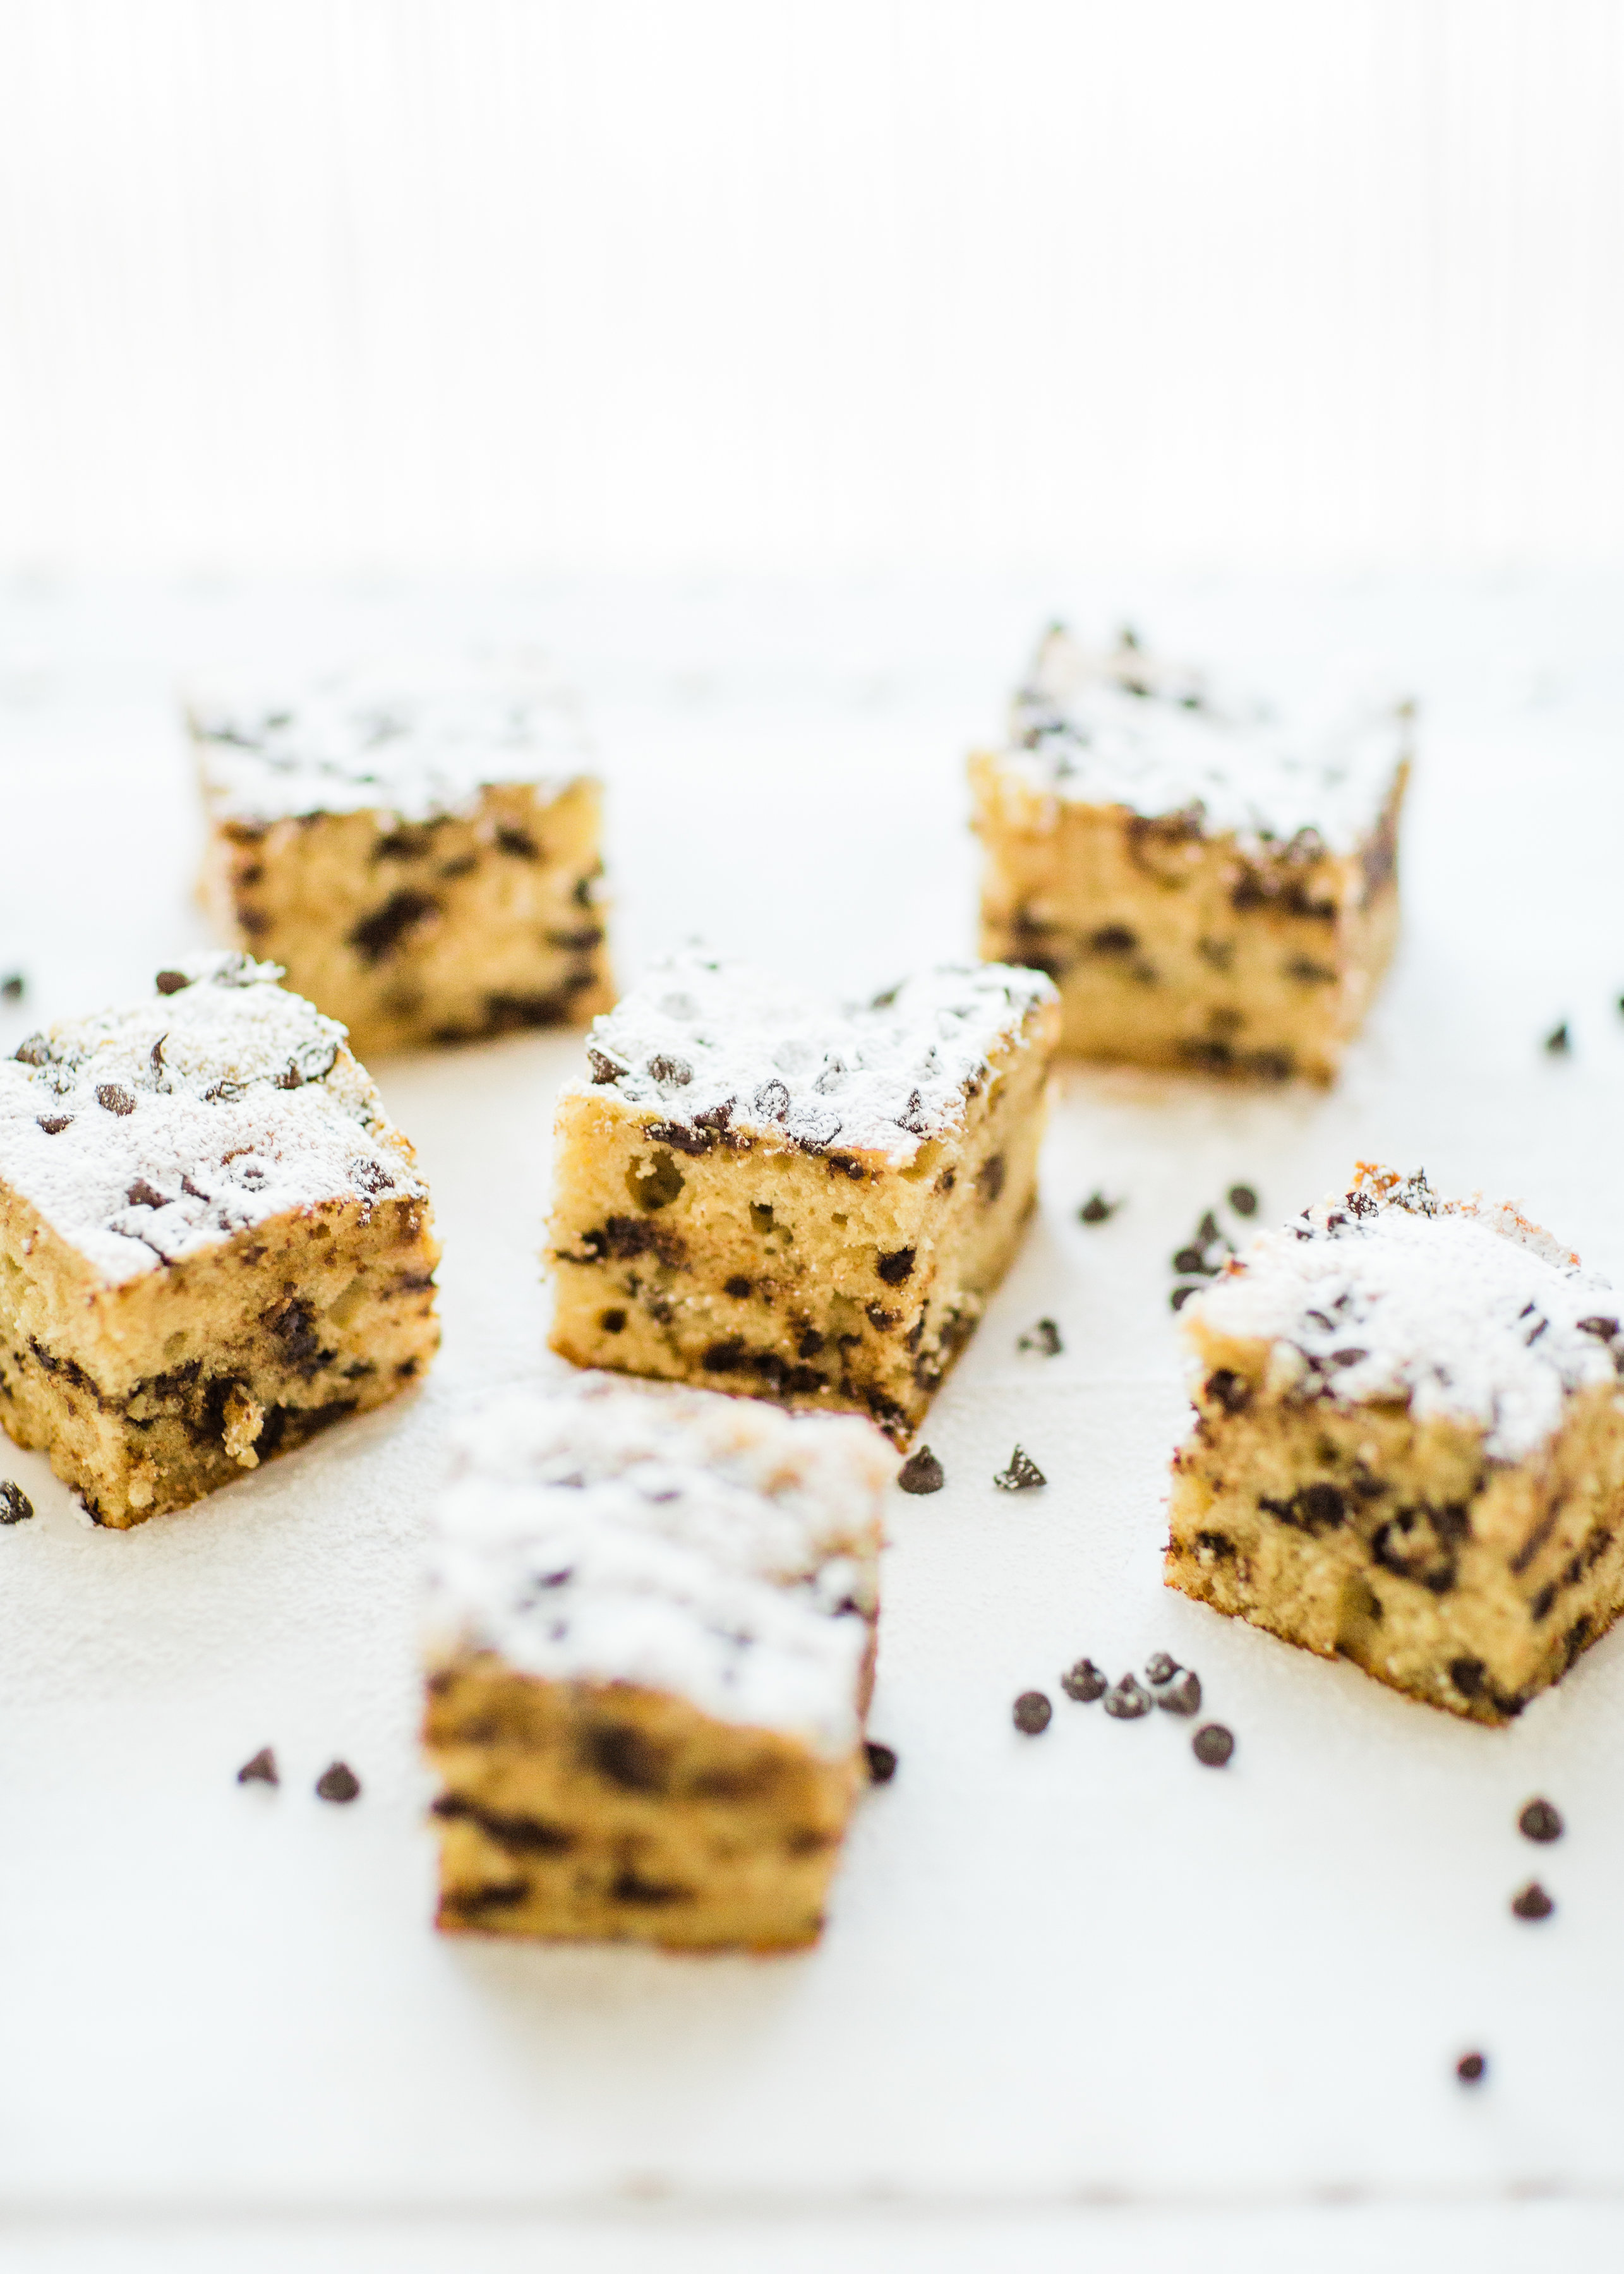 Chocolate Chip Snack Cake, lunch and snack idea kids love